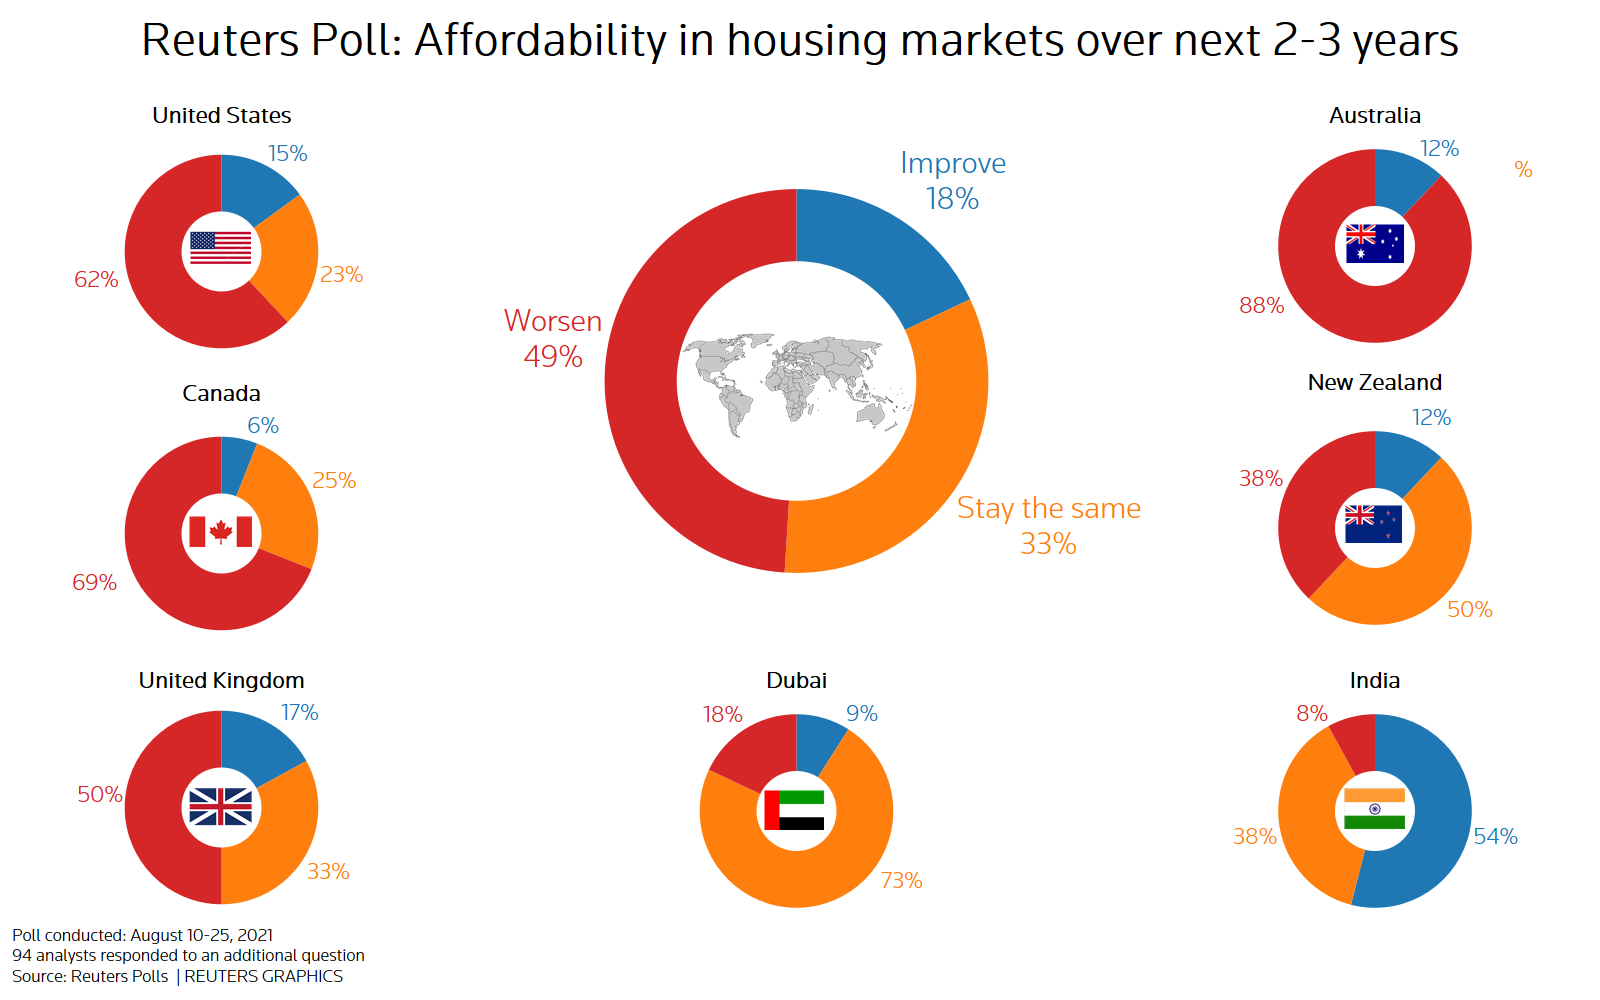 Reuters poll graphic on the global housing market outlook: